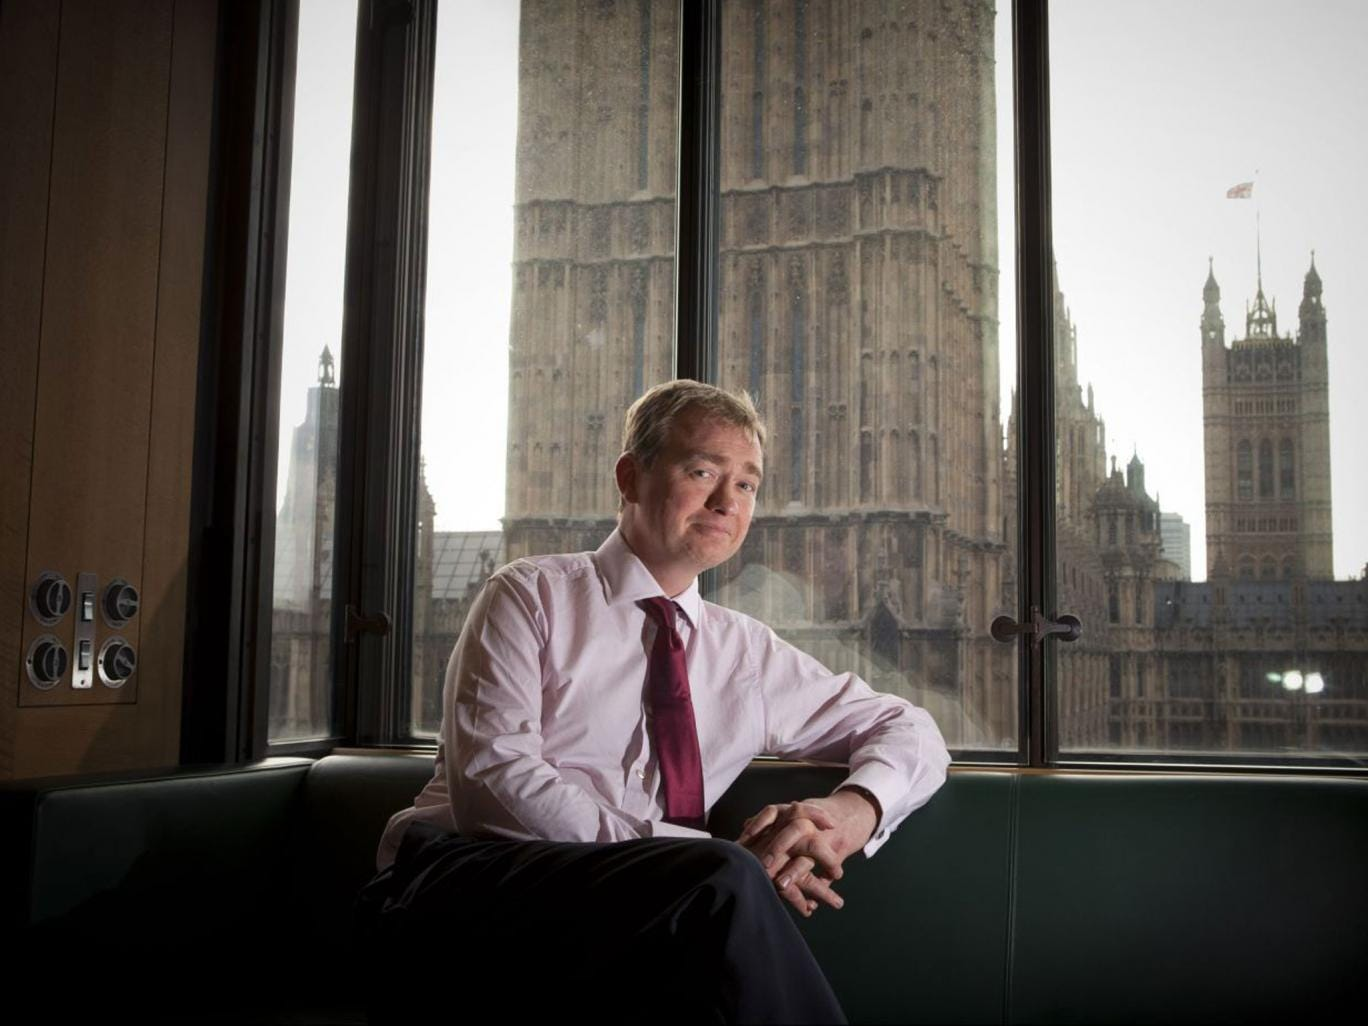 Leadership bid: Tim Farron is 'untainted'